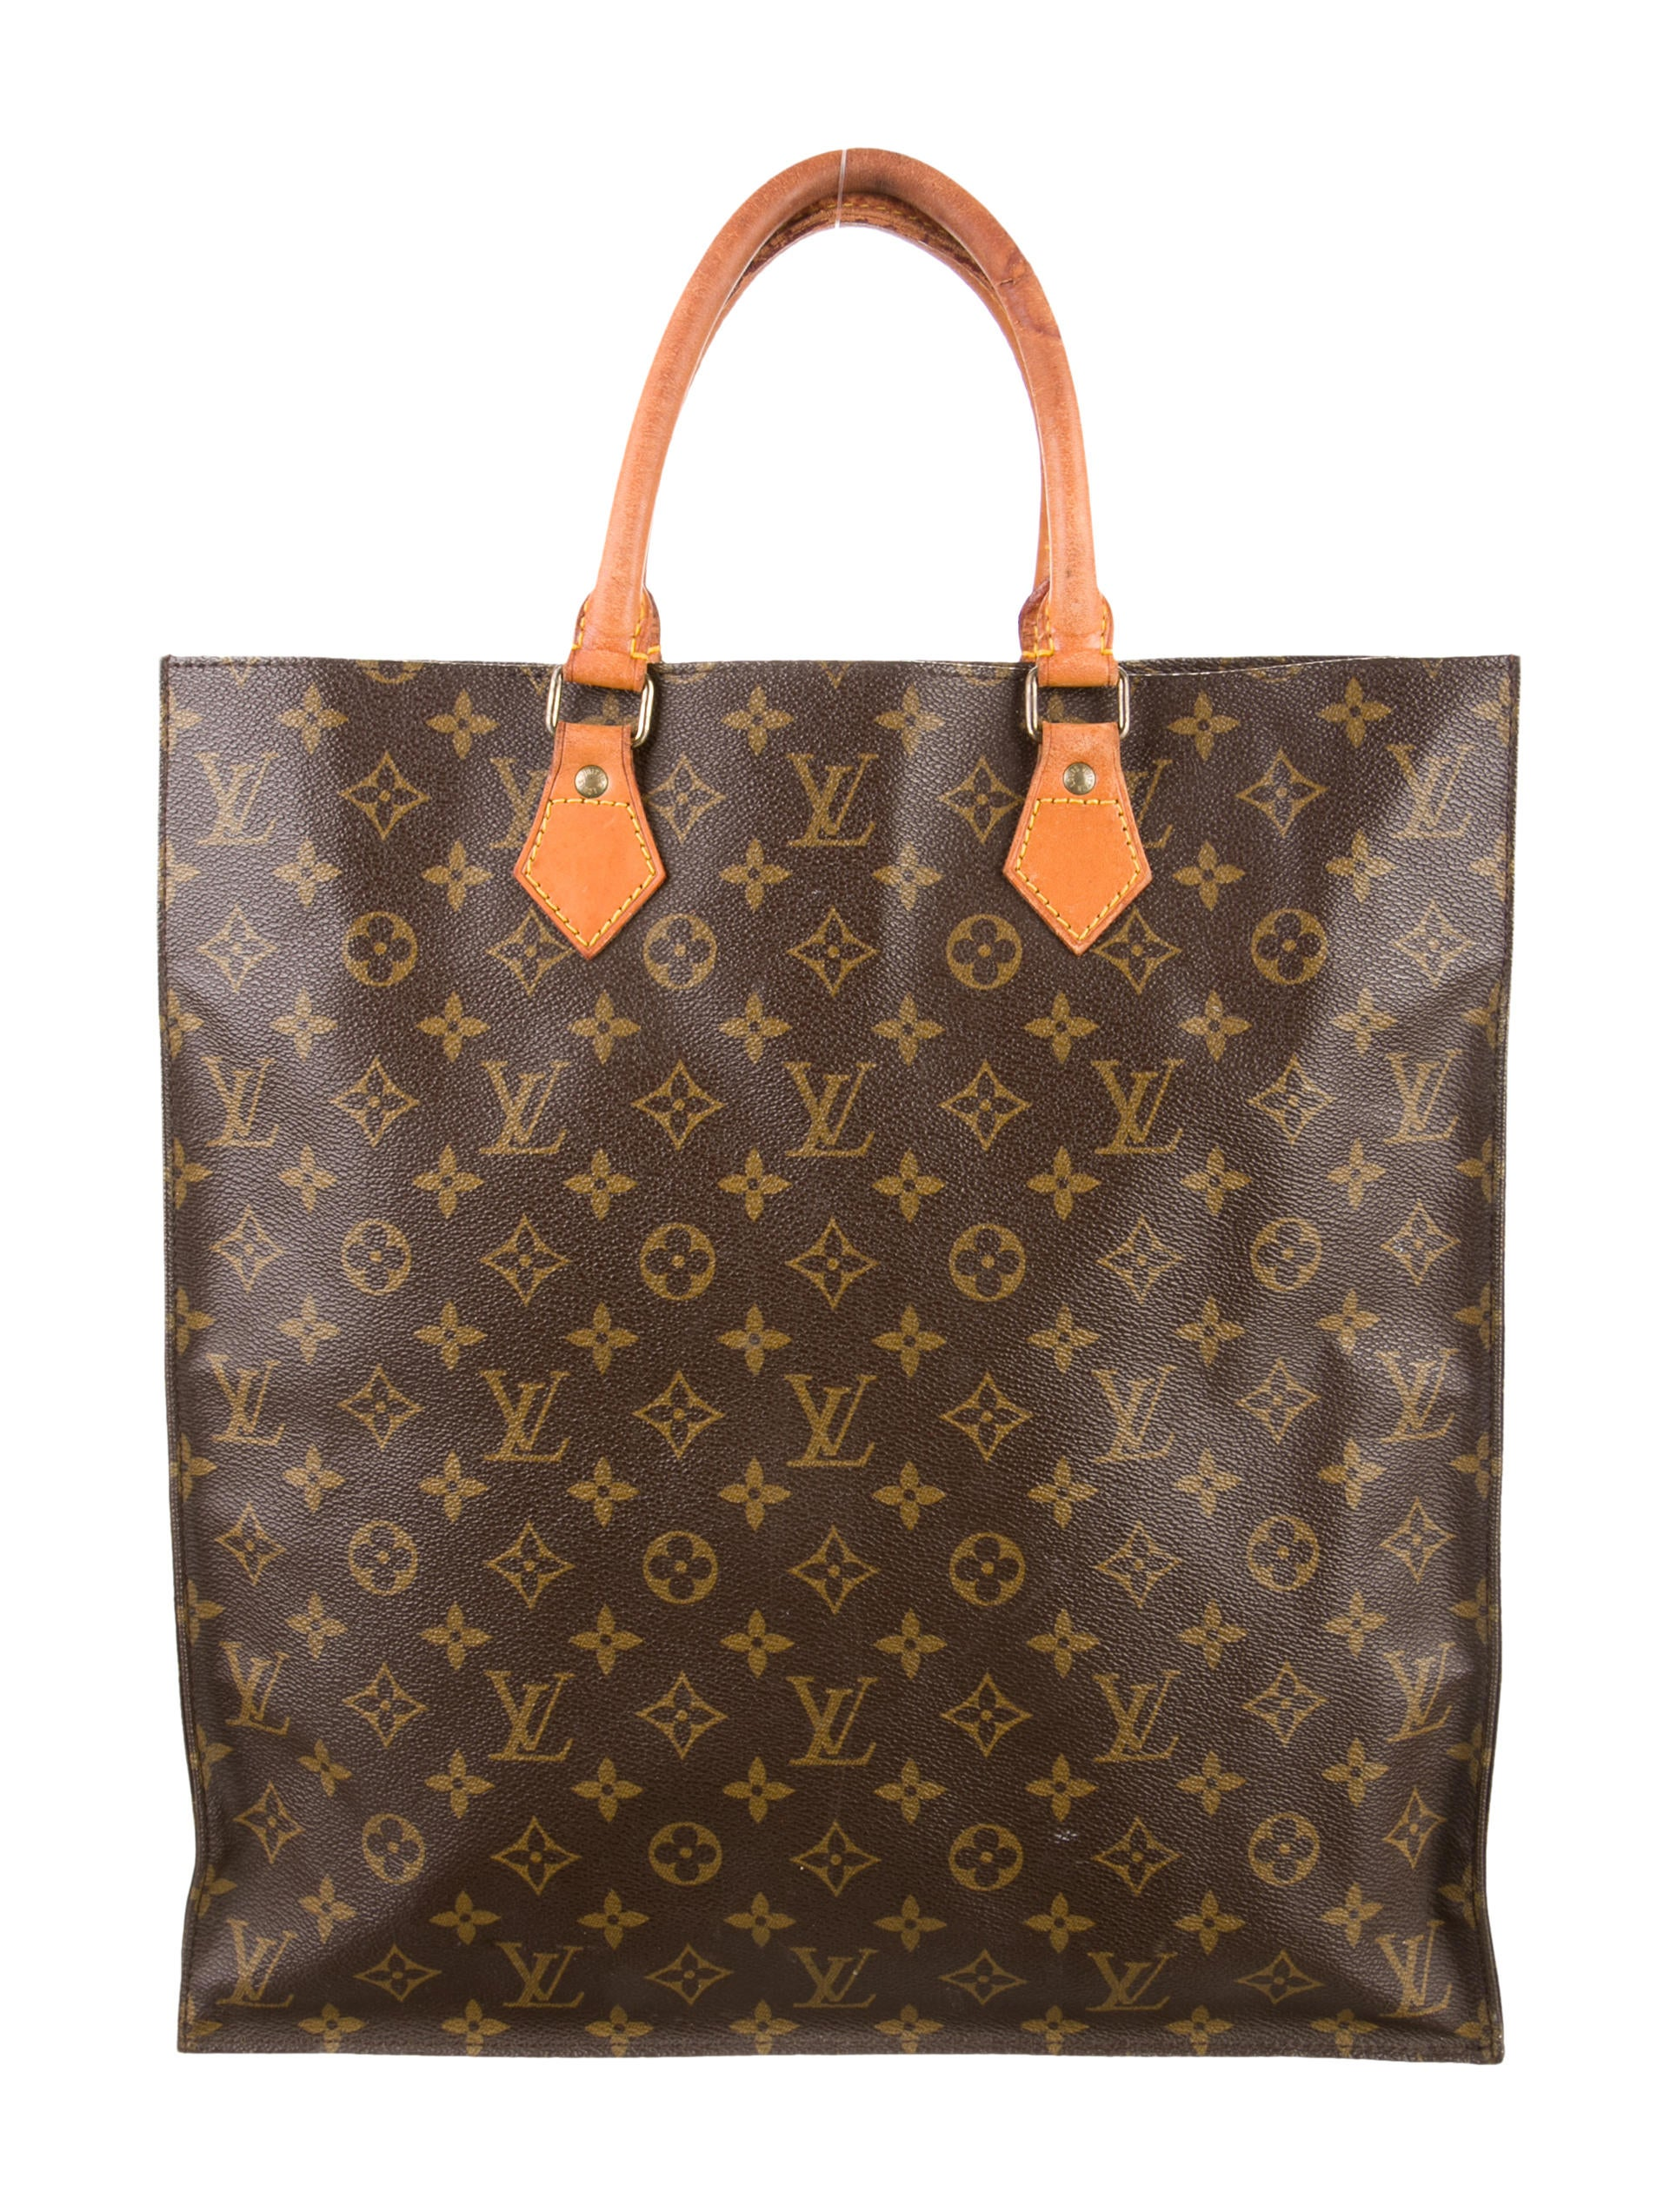 Louis vuitton monogram sac plat handbags lou98825 for Louis vuitton monogram miroir sac plat